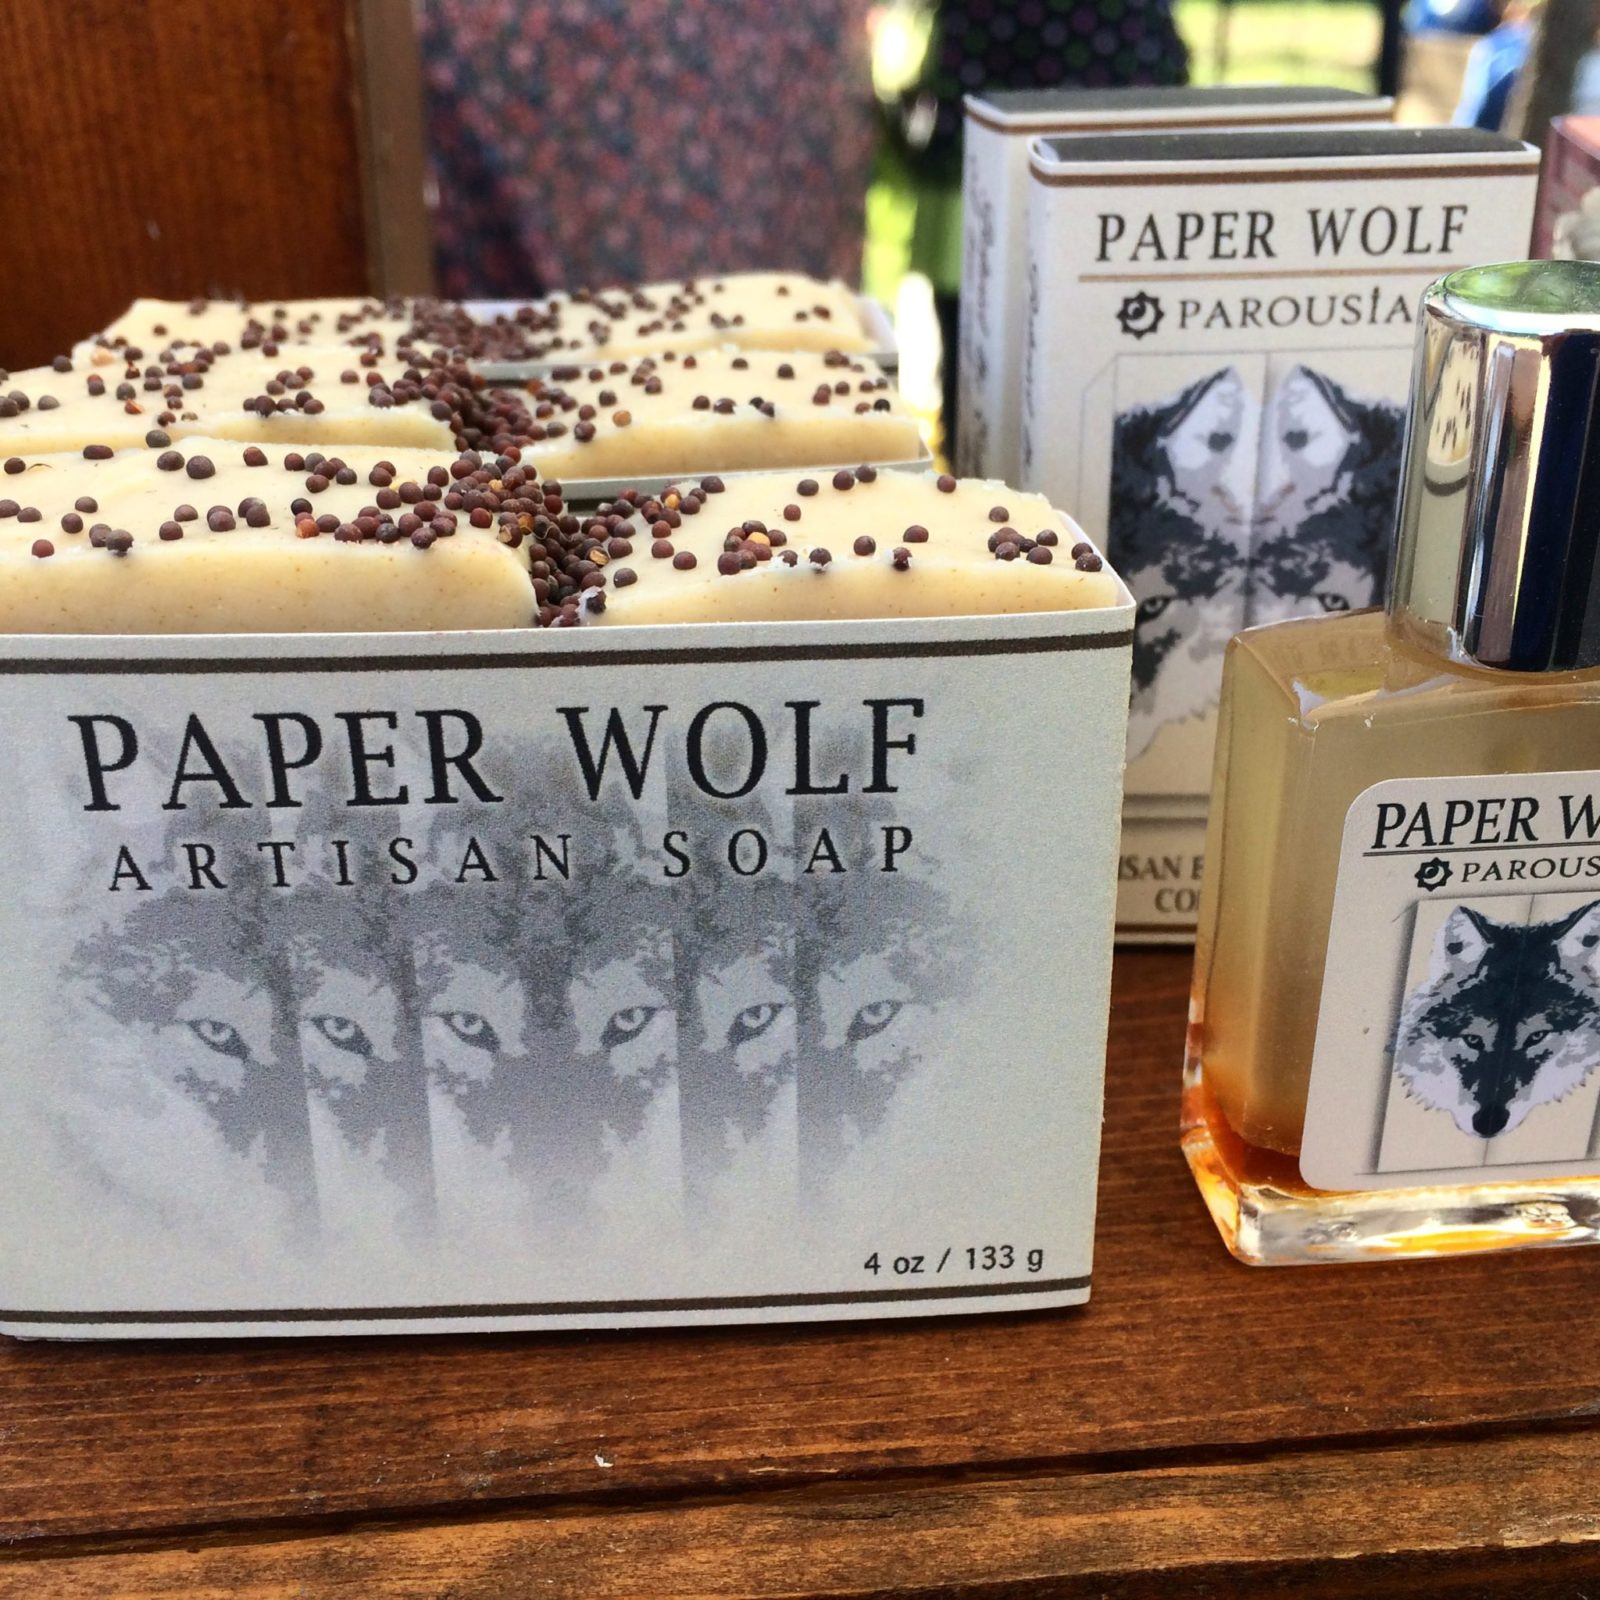 Paper Wolf Natural Soap and Cologne by Old Factory at Founders Day Dripping Springs Texas